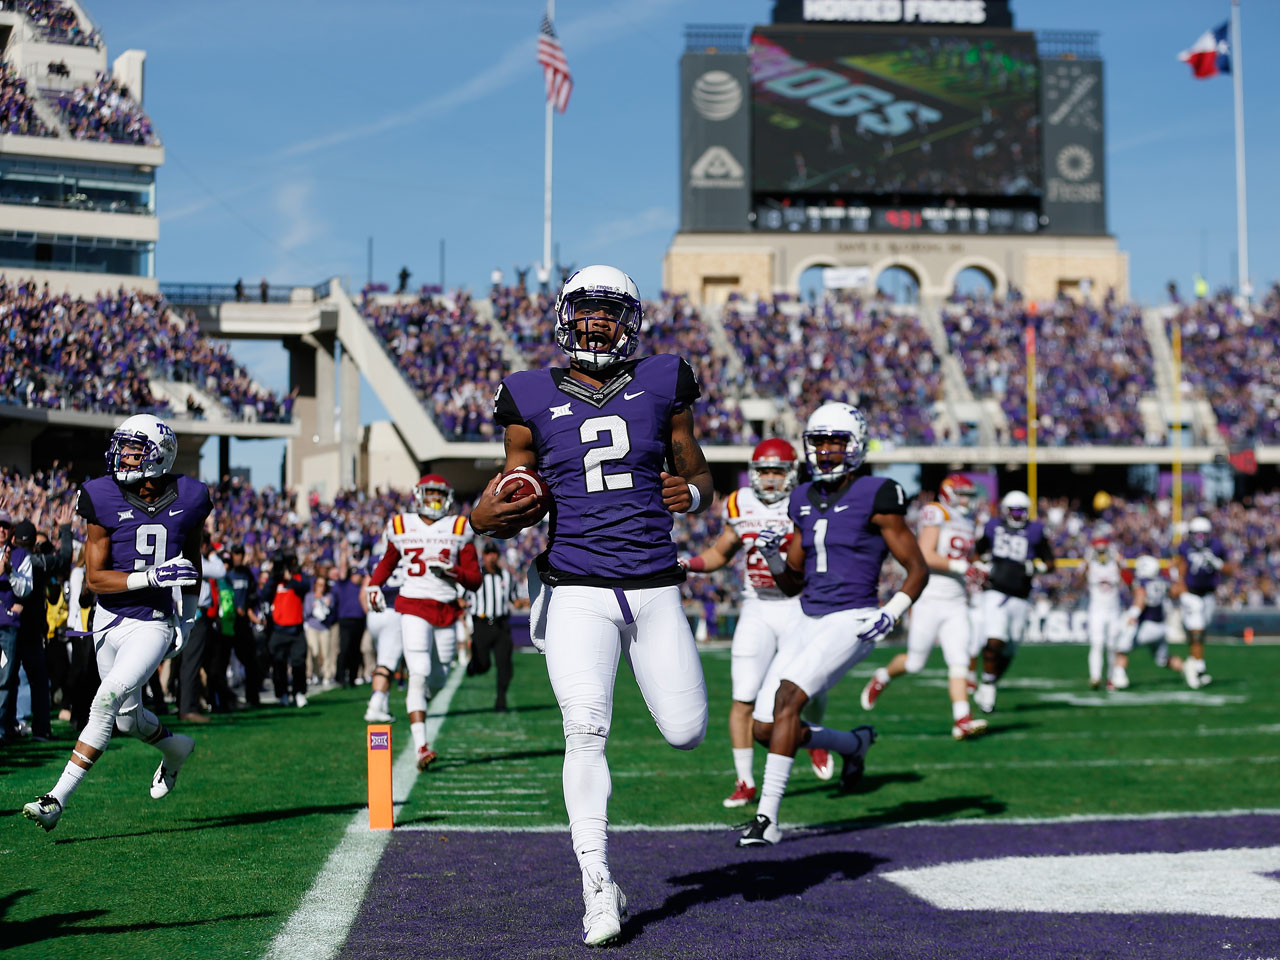 Tcu Baylor Muddle College Football Playoff Picture Cbs News